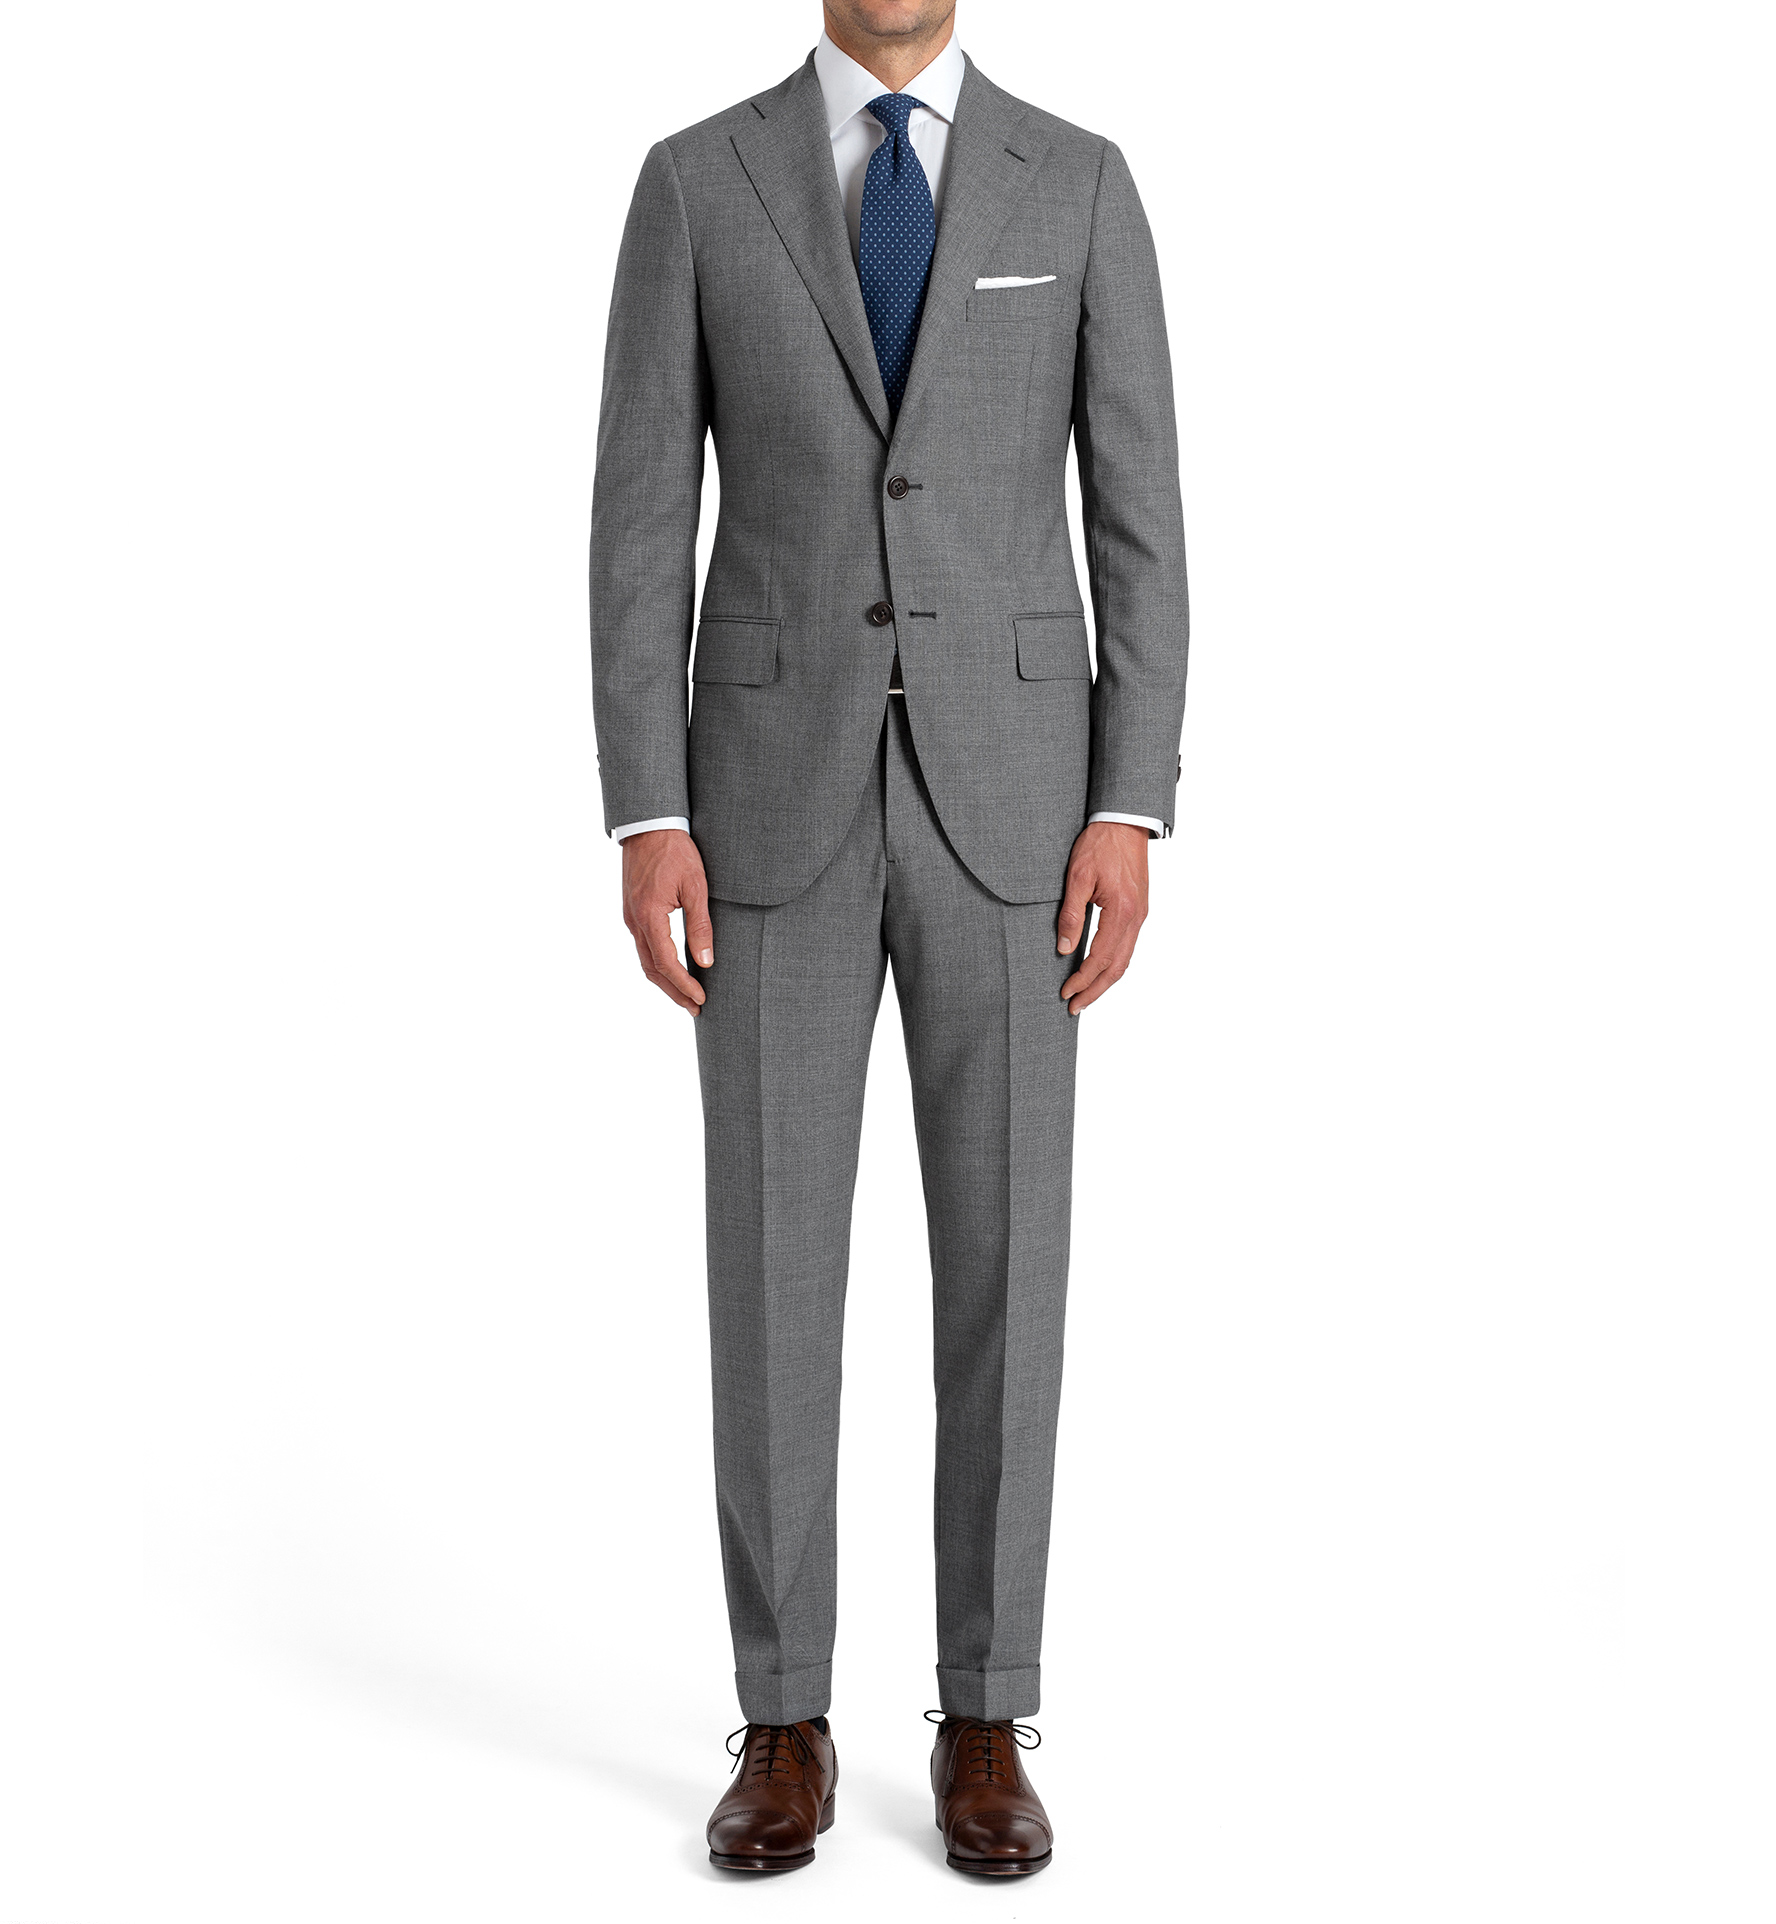 Zoom Image of Allen Grey Lightweight Fresco Wool Suit with Cuffed Trouser